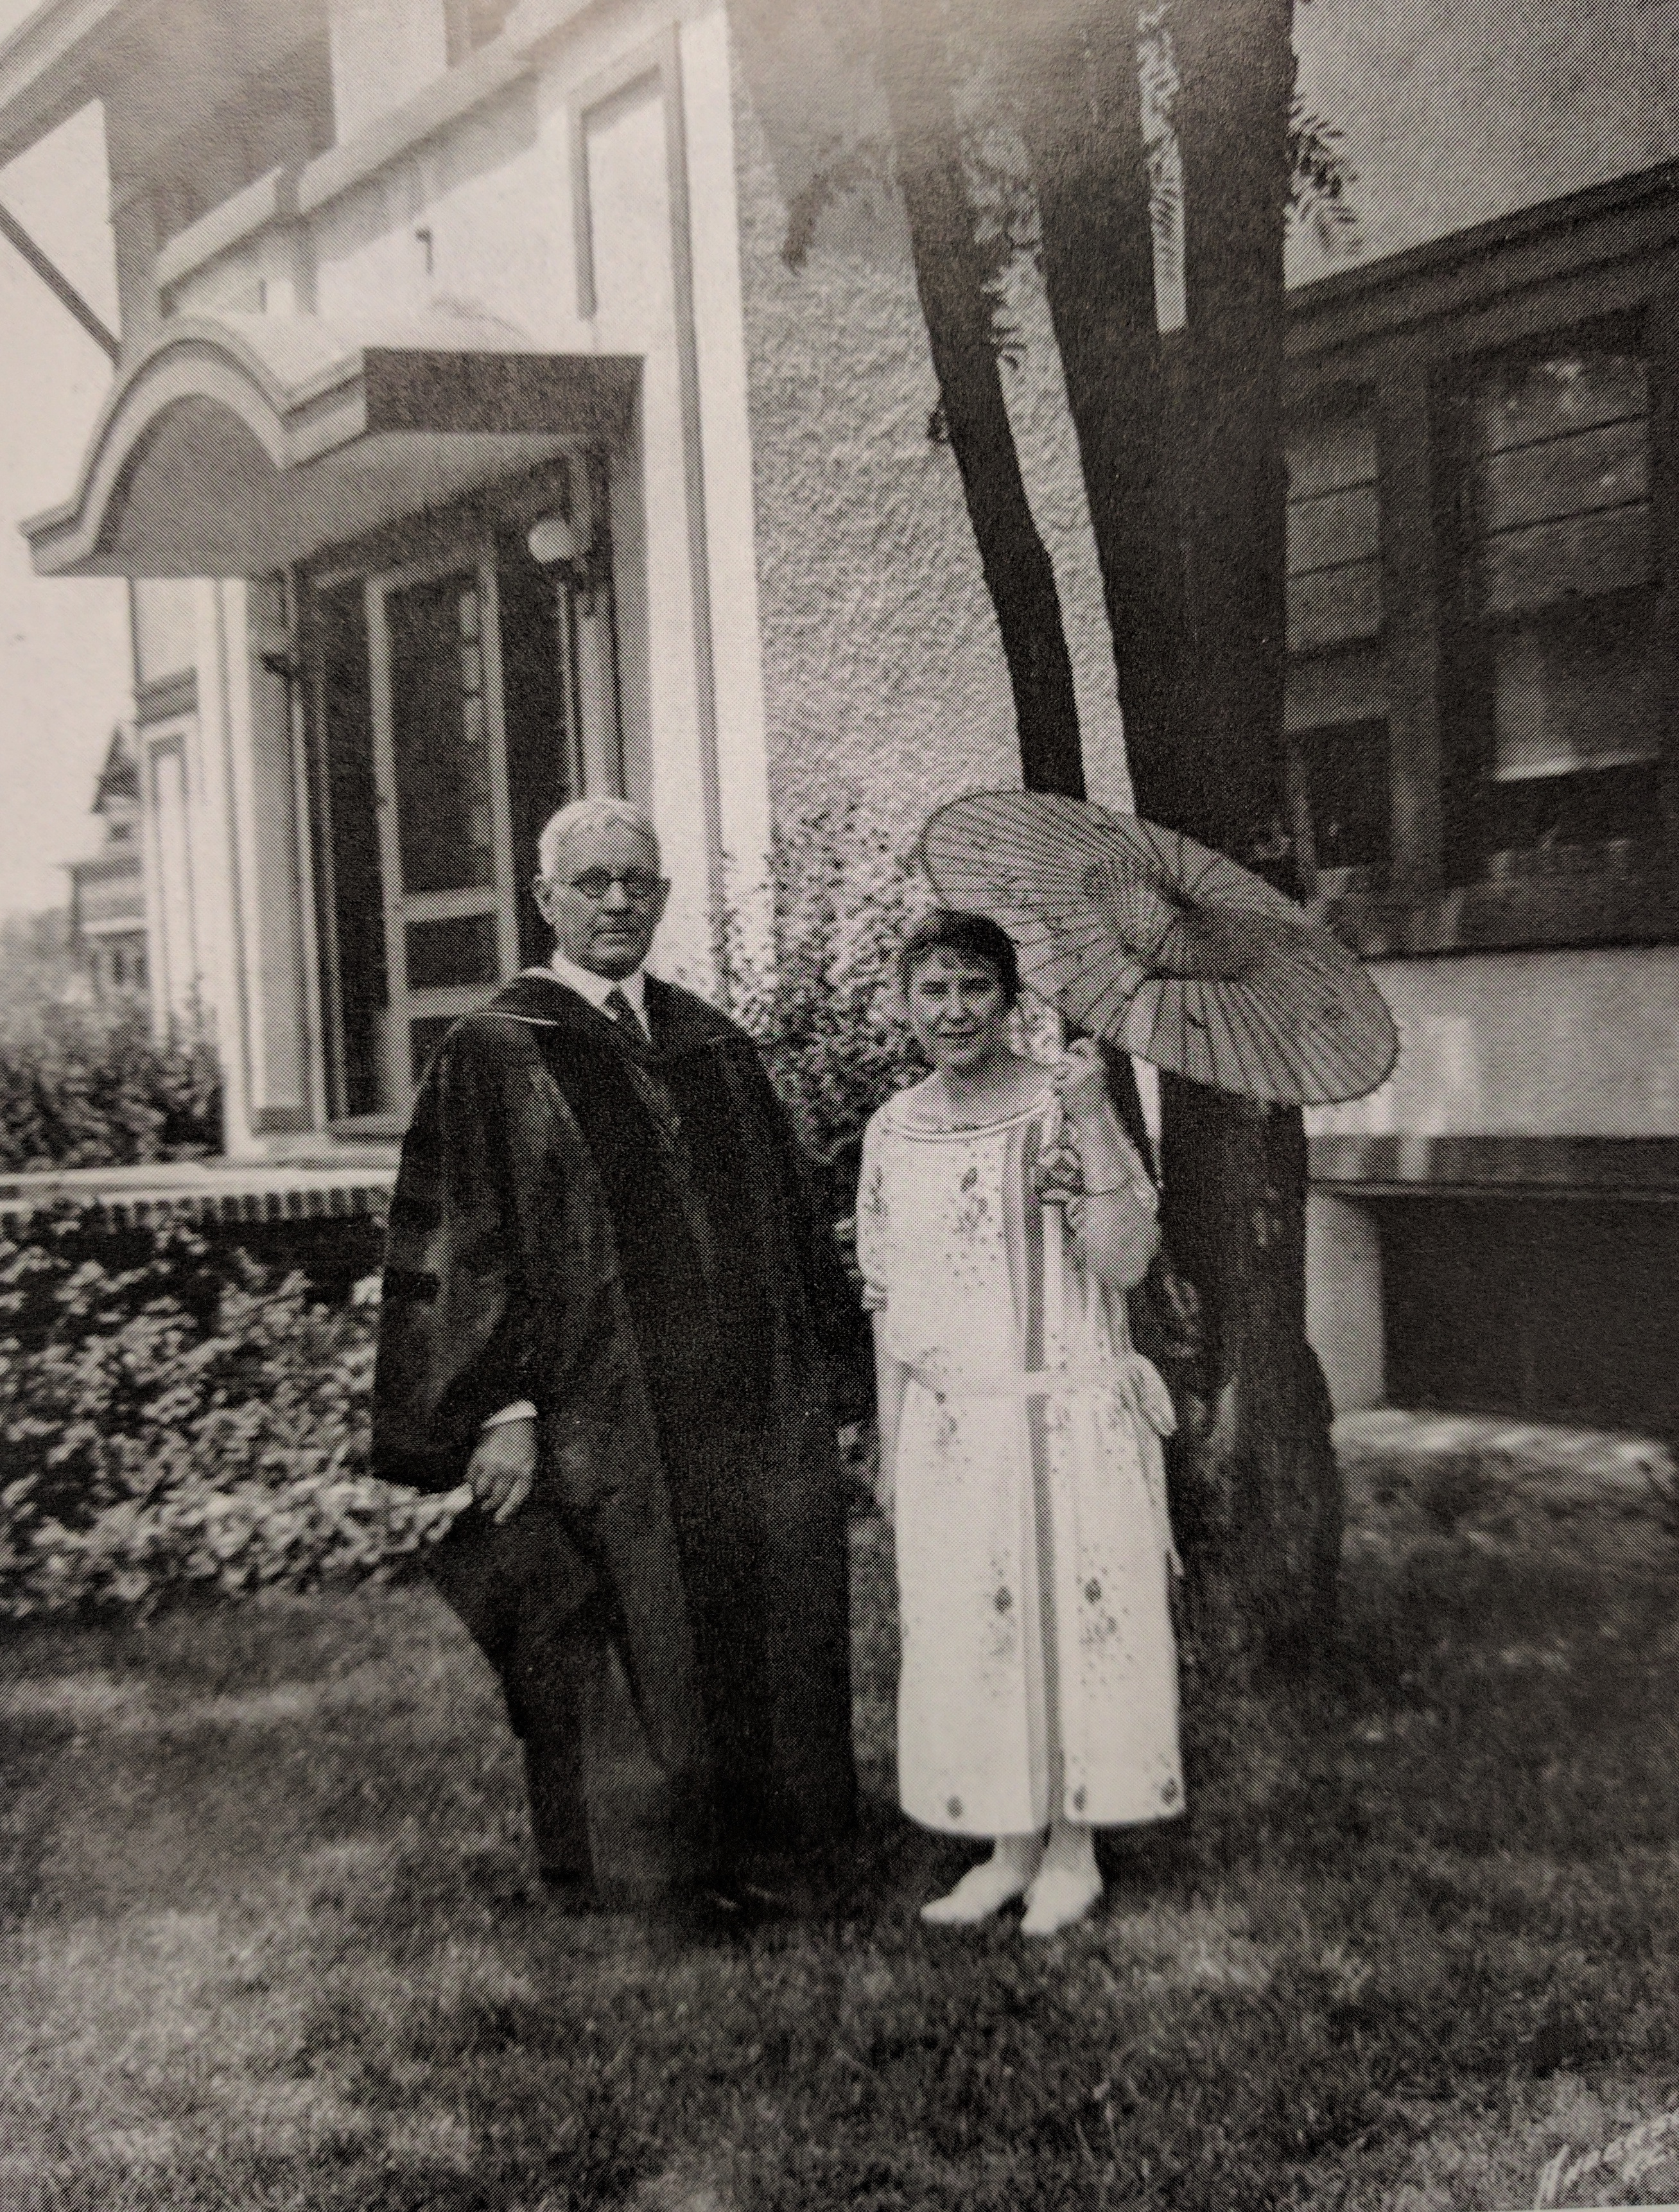 President Frederick Hawley and his wife Pauline Hawley in front of the Park University White House